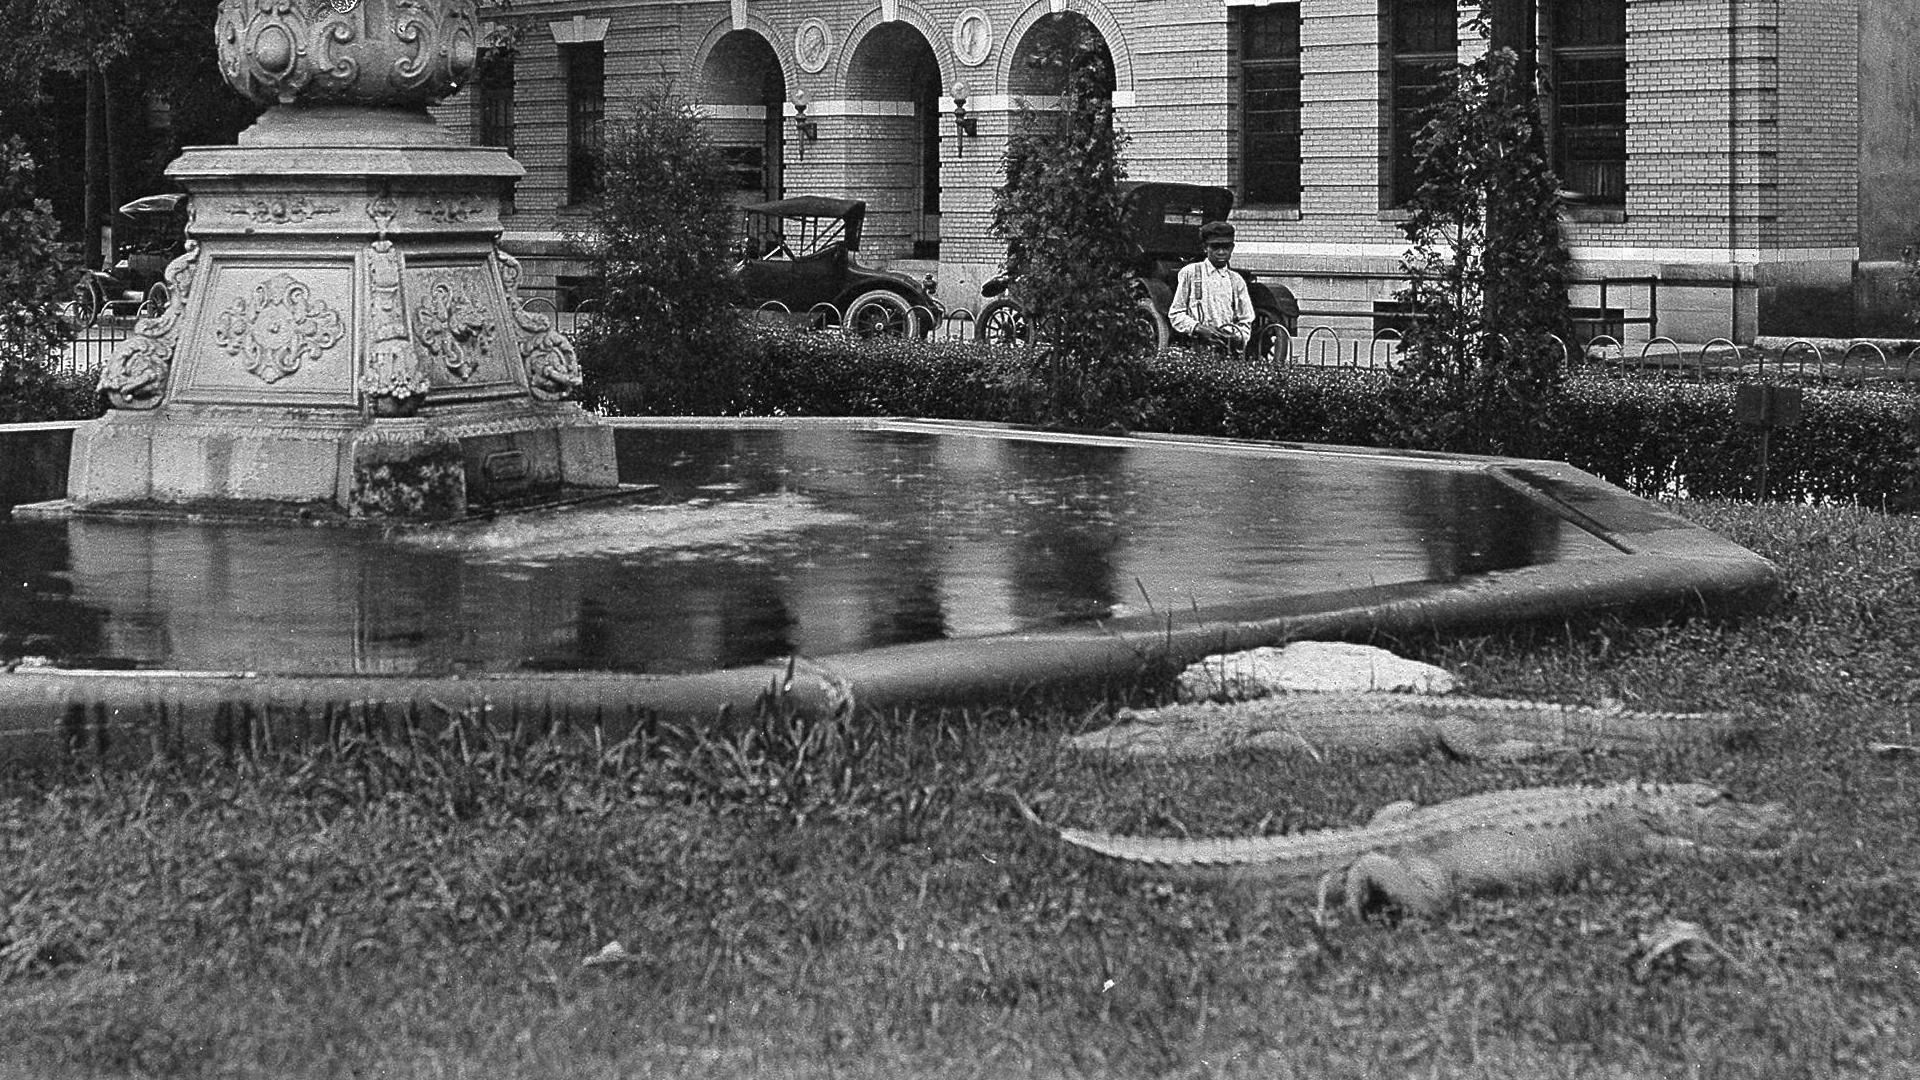 The days when alligators roamed the streets in Chattanooga